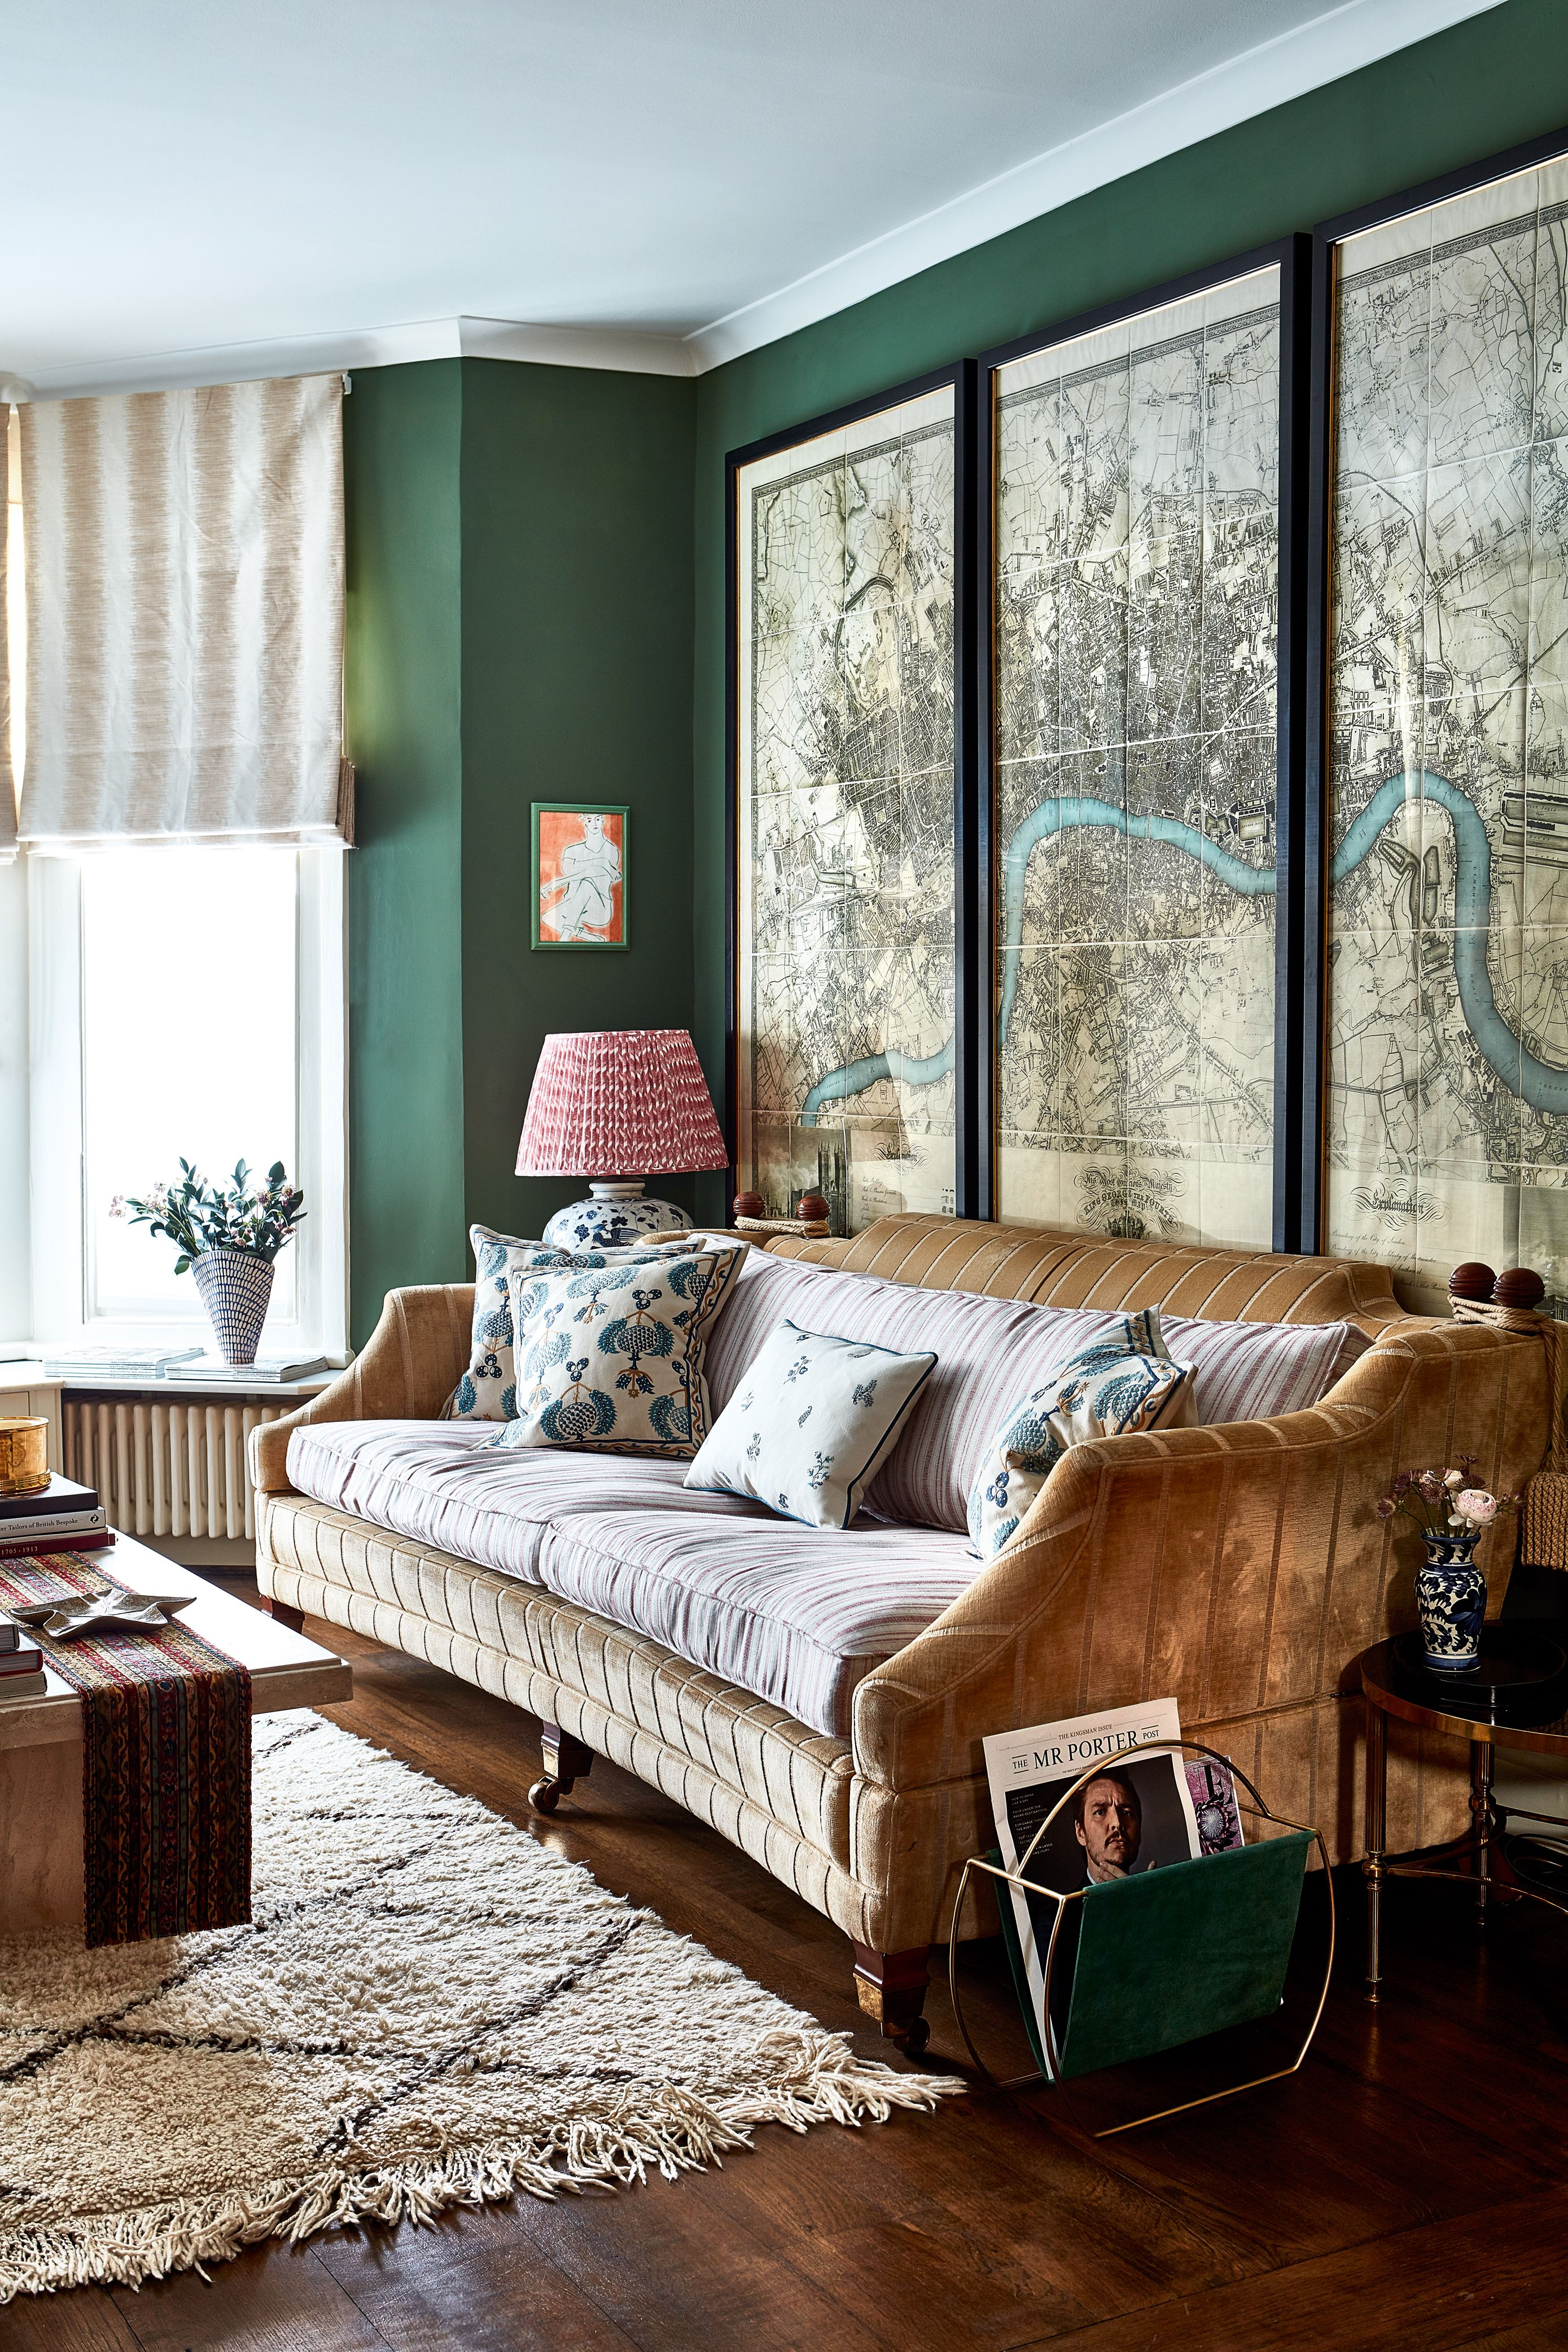 Real home: a stylish transformation of a late-Victorian ...